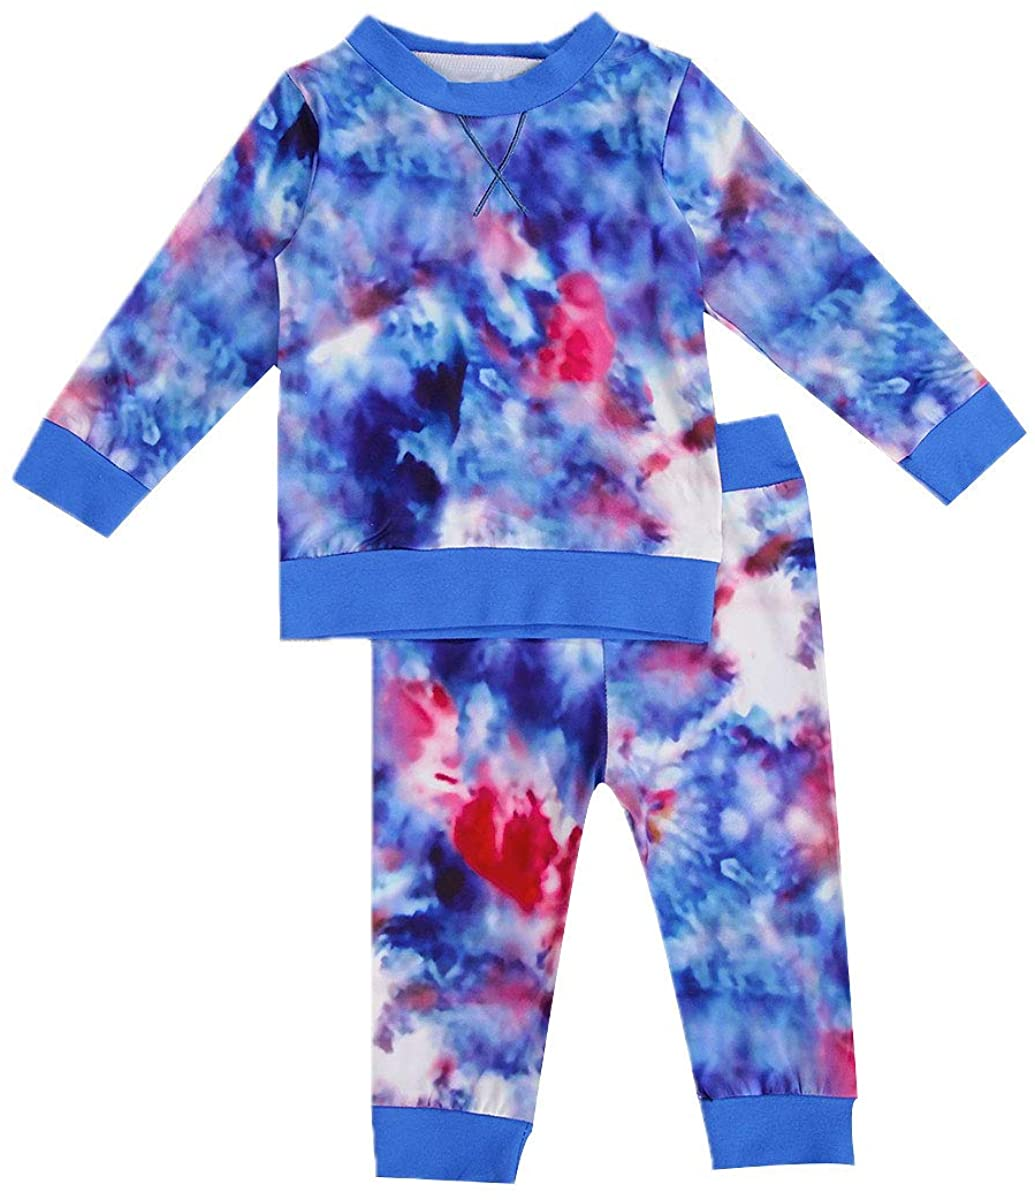 Unisex Baby Boy Girl Clothes Tie Dye Long Sleeve Sweatshirt Top Pants Set Spring Fall Winter Outfit Clothing